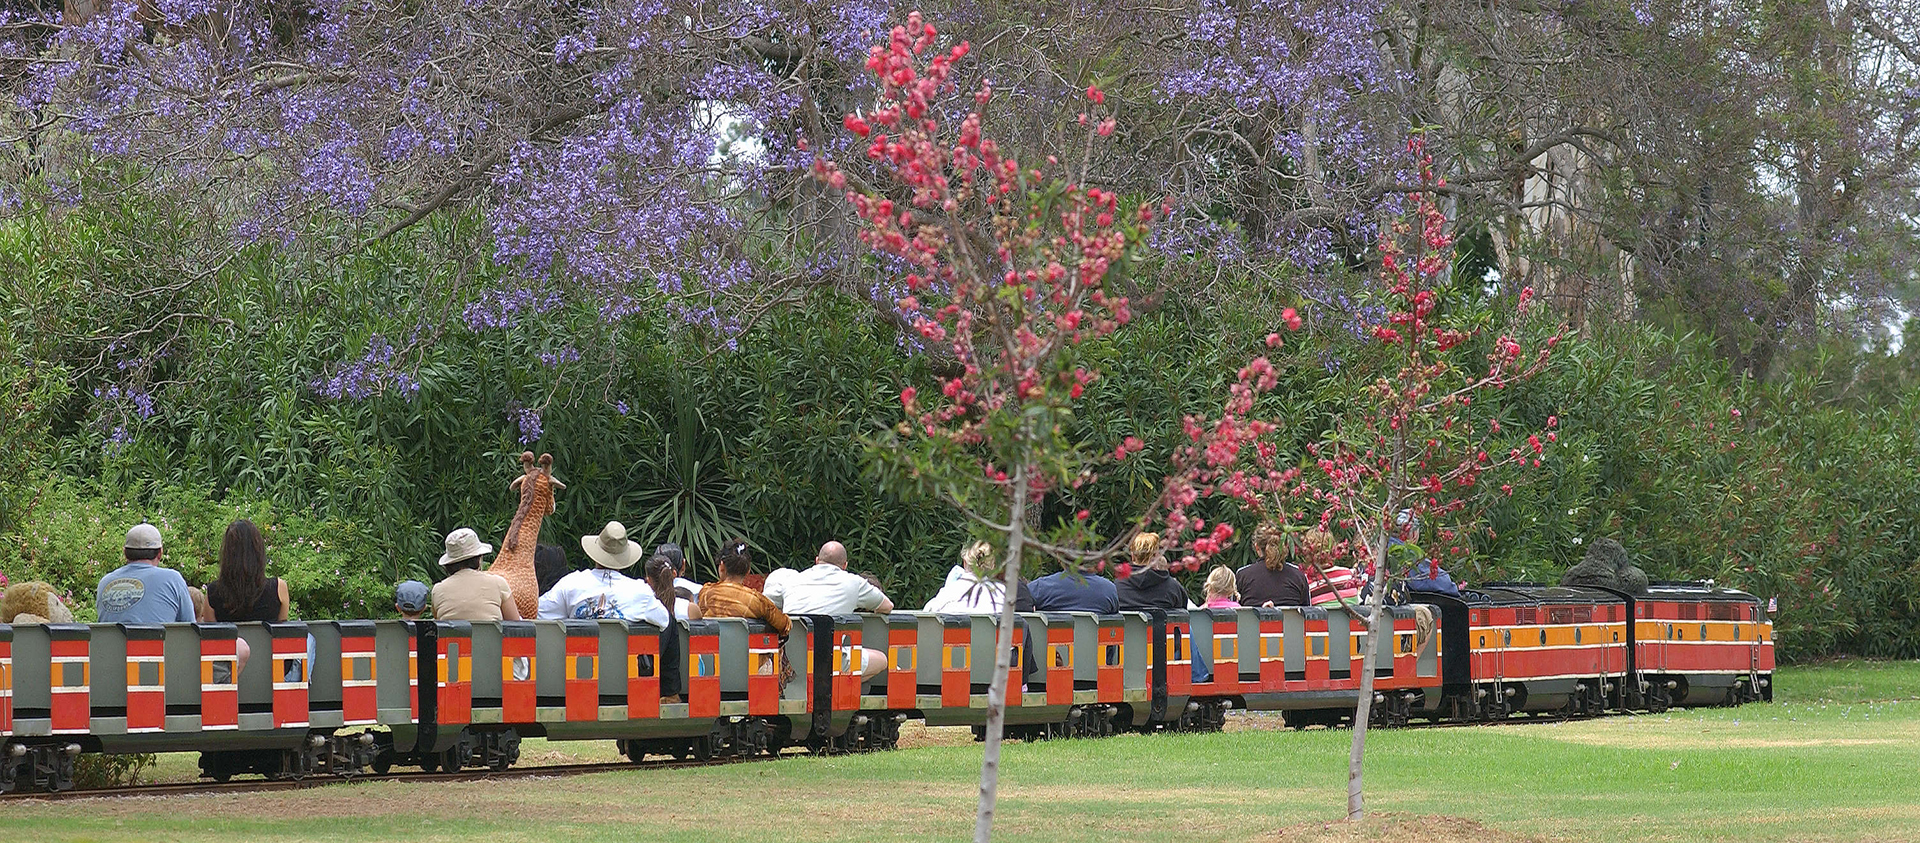 Balboa Park Miniature Train with blooming trees